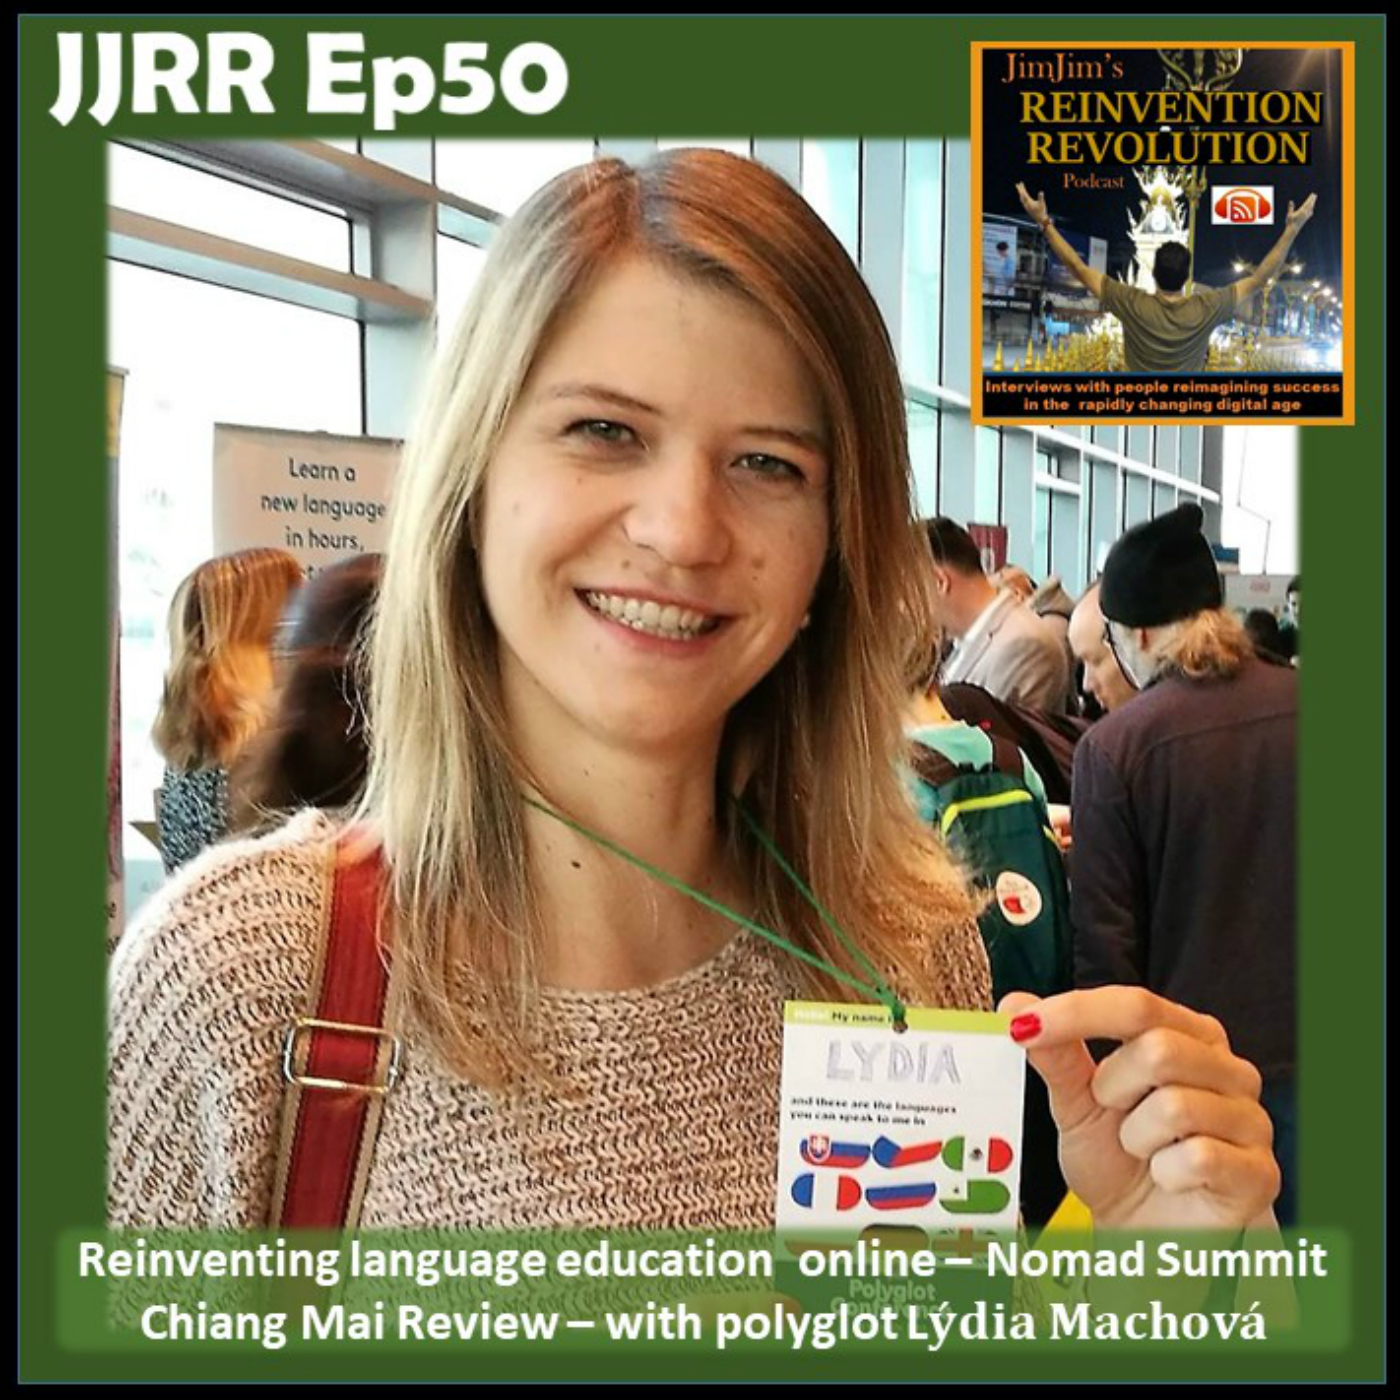 Read more about the article JJRR Ep50 Reinventing language education online – Nomad Summit Chiang Mai Review – with polyglot Ly ́dia Machova ́